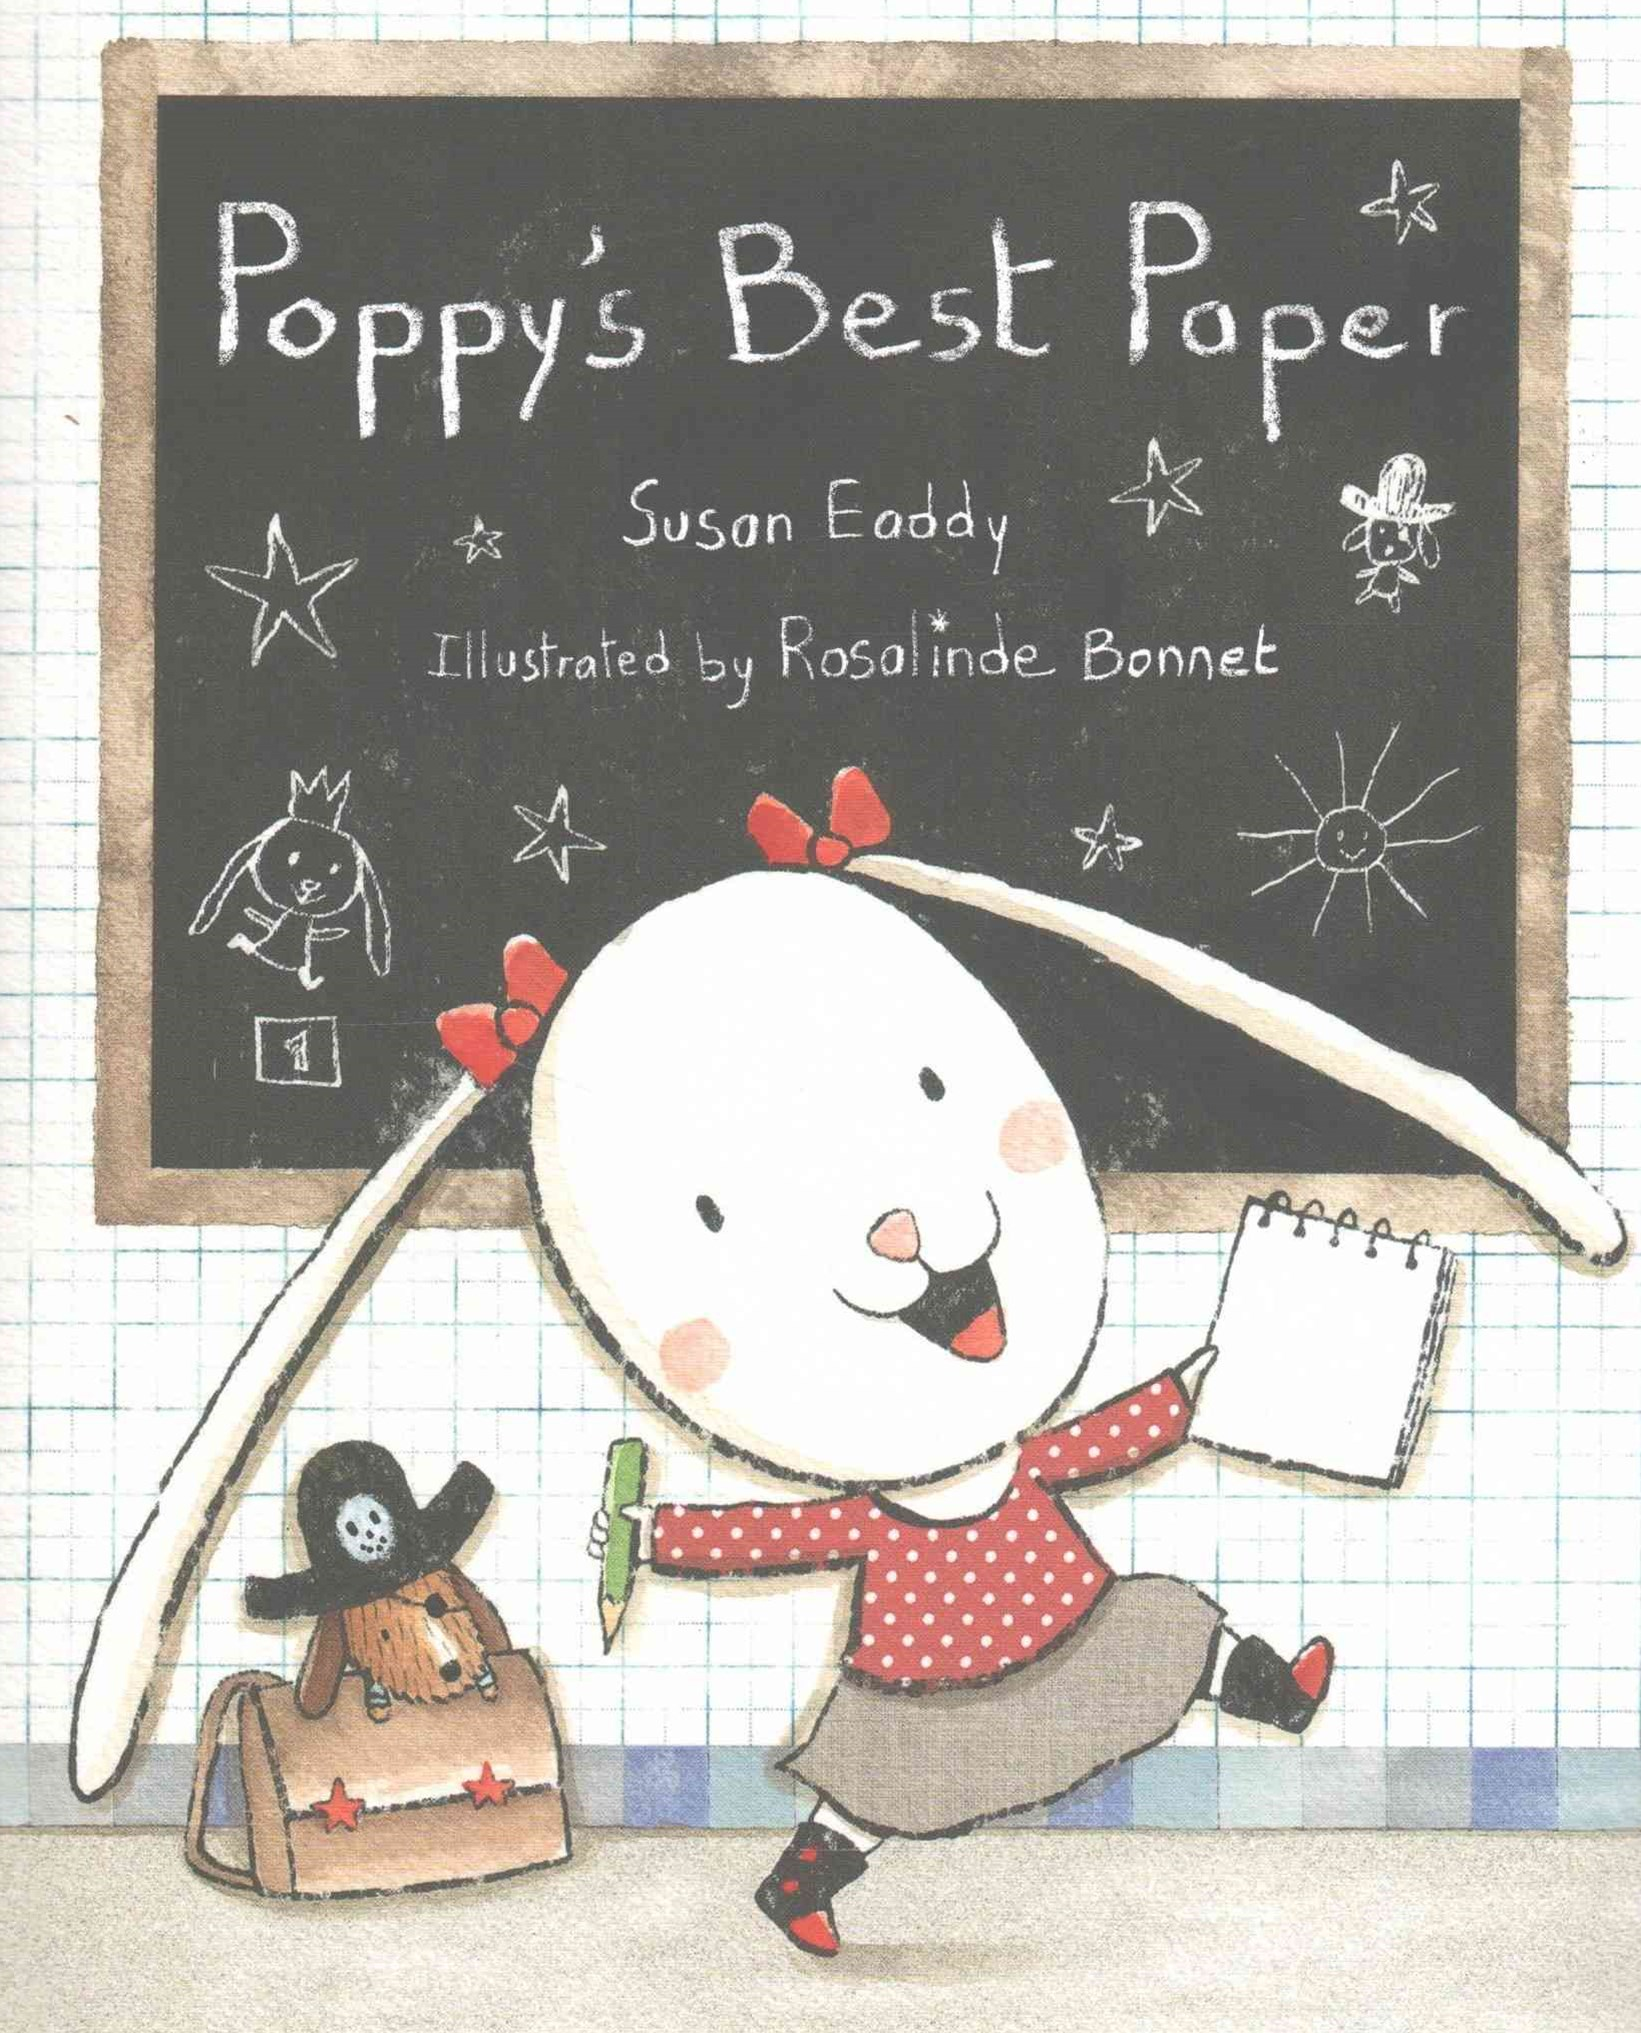 Poppy's Best Paper (1 Hardcover/1 CD)